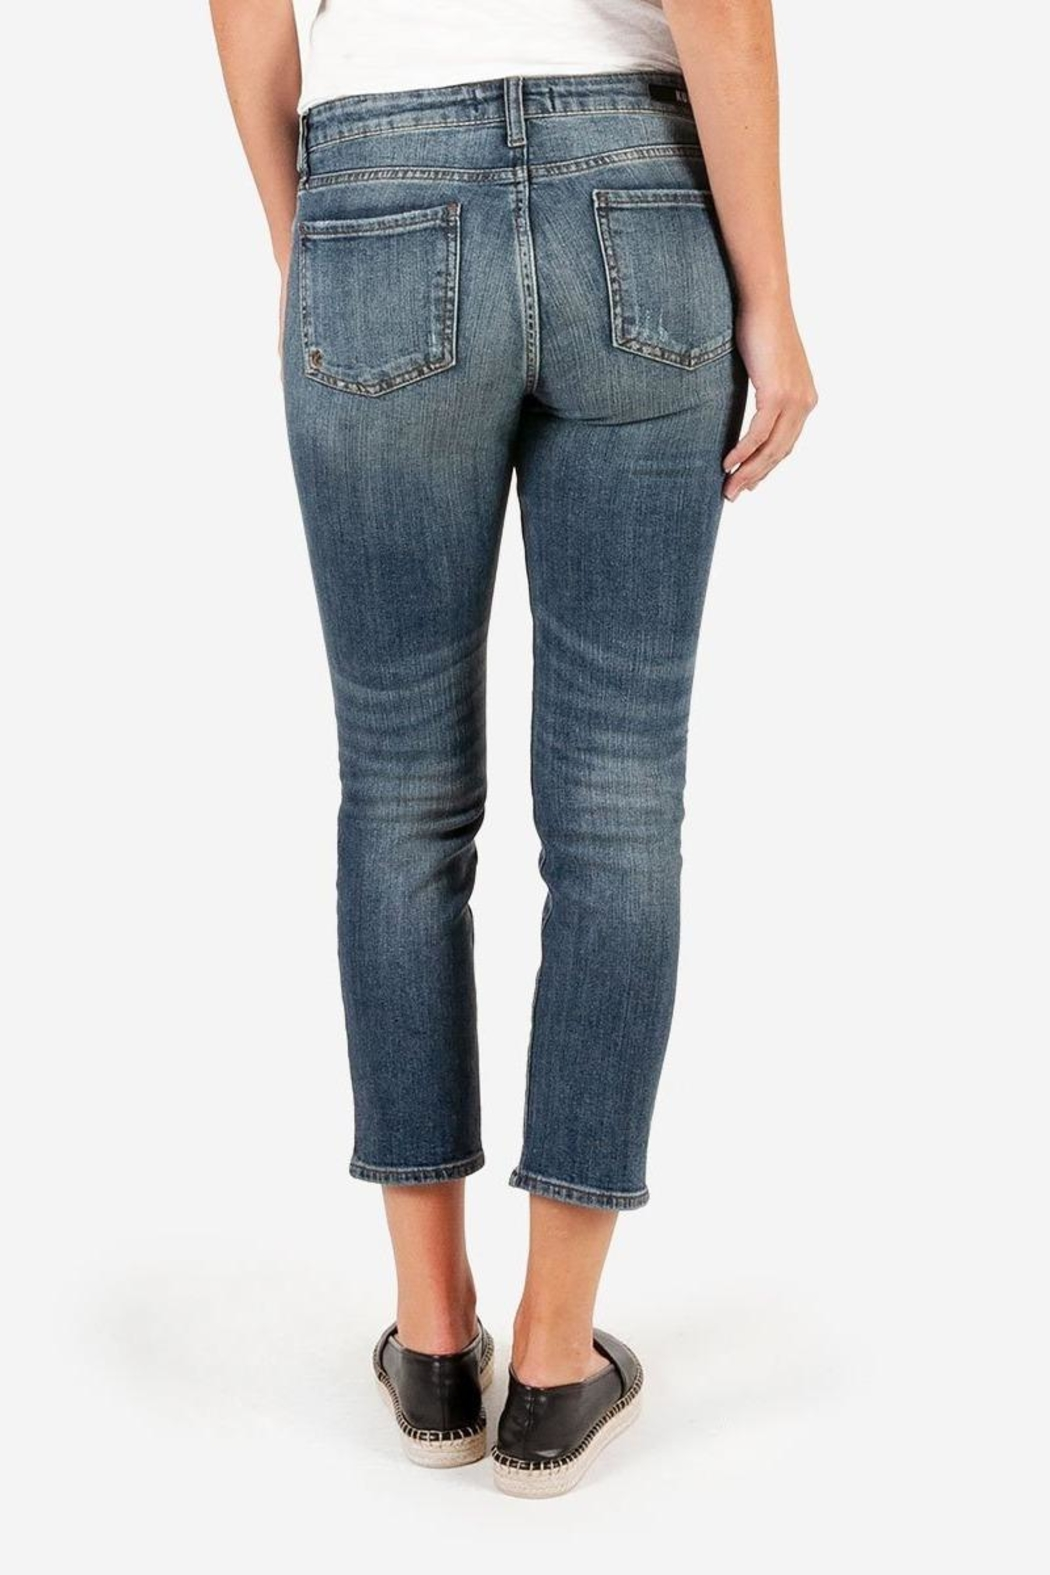 Kut from the Kloth Catherine Ankle Straight-Leg - Back Cropped Image